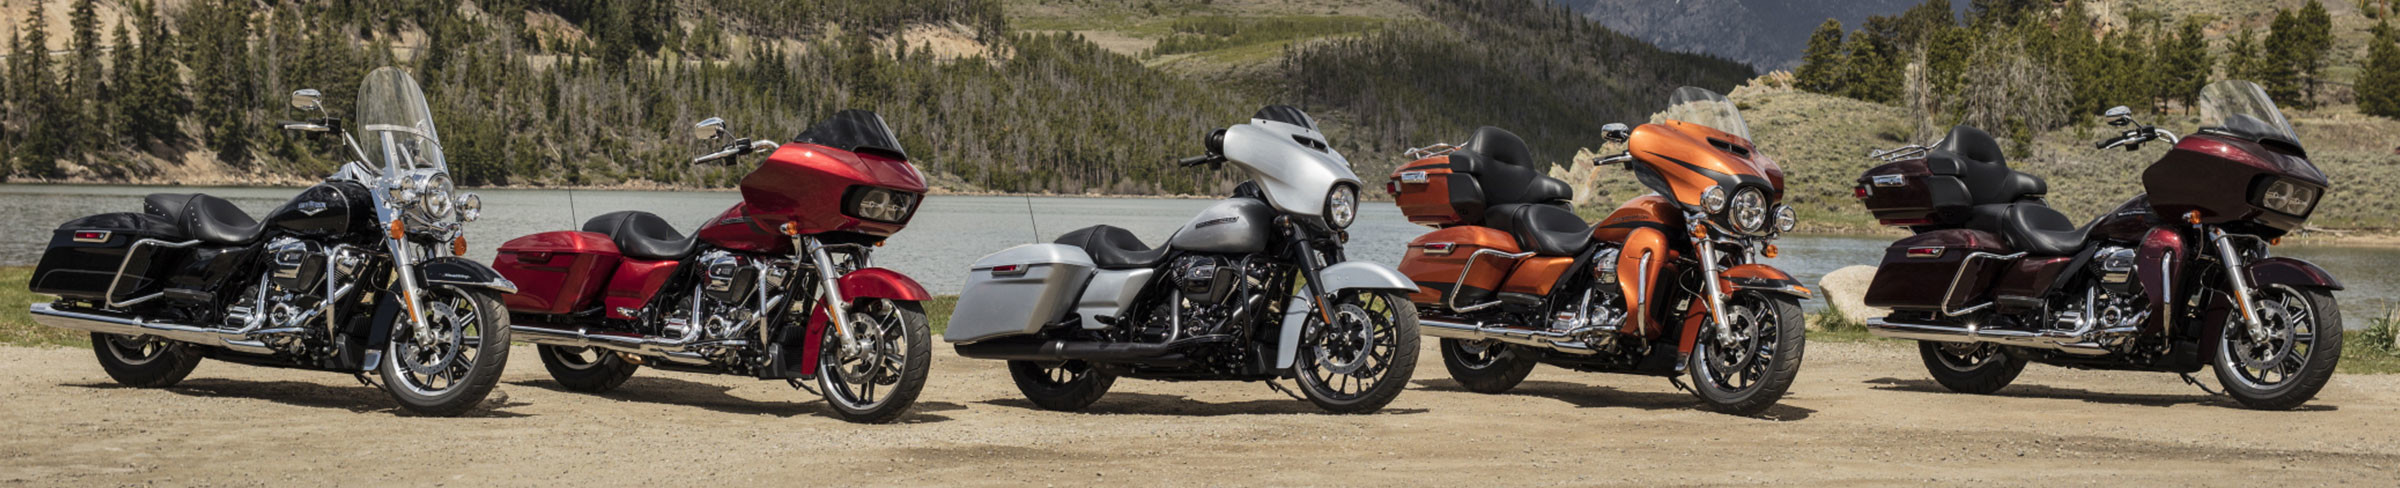 Diamondback Harley-Davidson® Dealer Specials